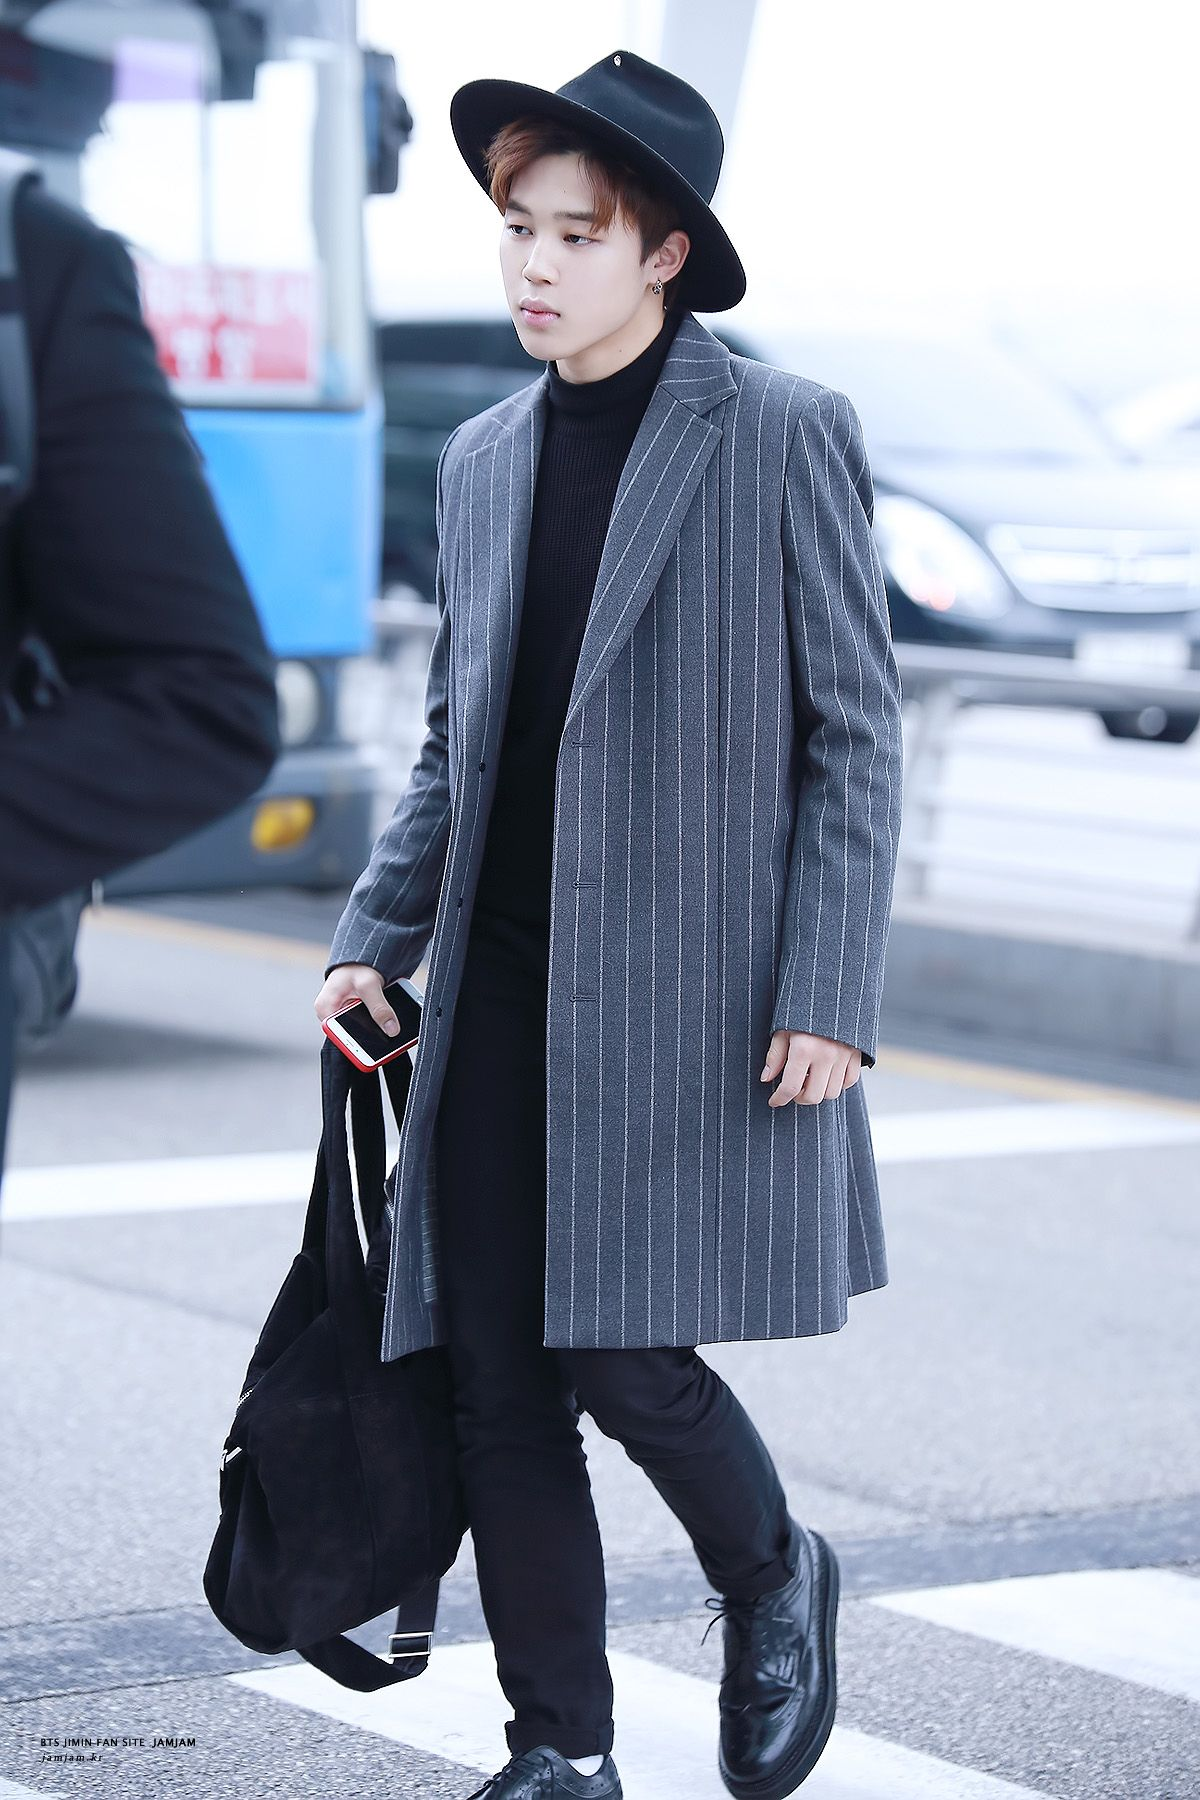 Who The Hell Wears This To An Airport Classy Oh Chimchim Xd Bts Bangtan Boys Pinterest